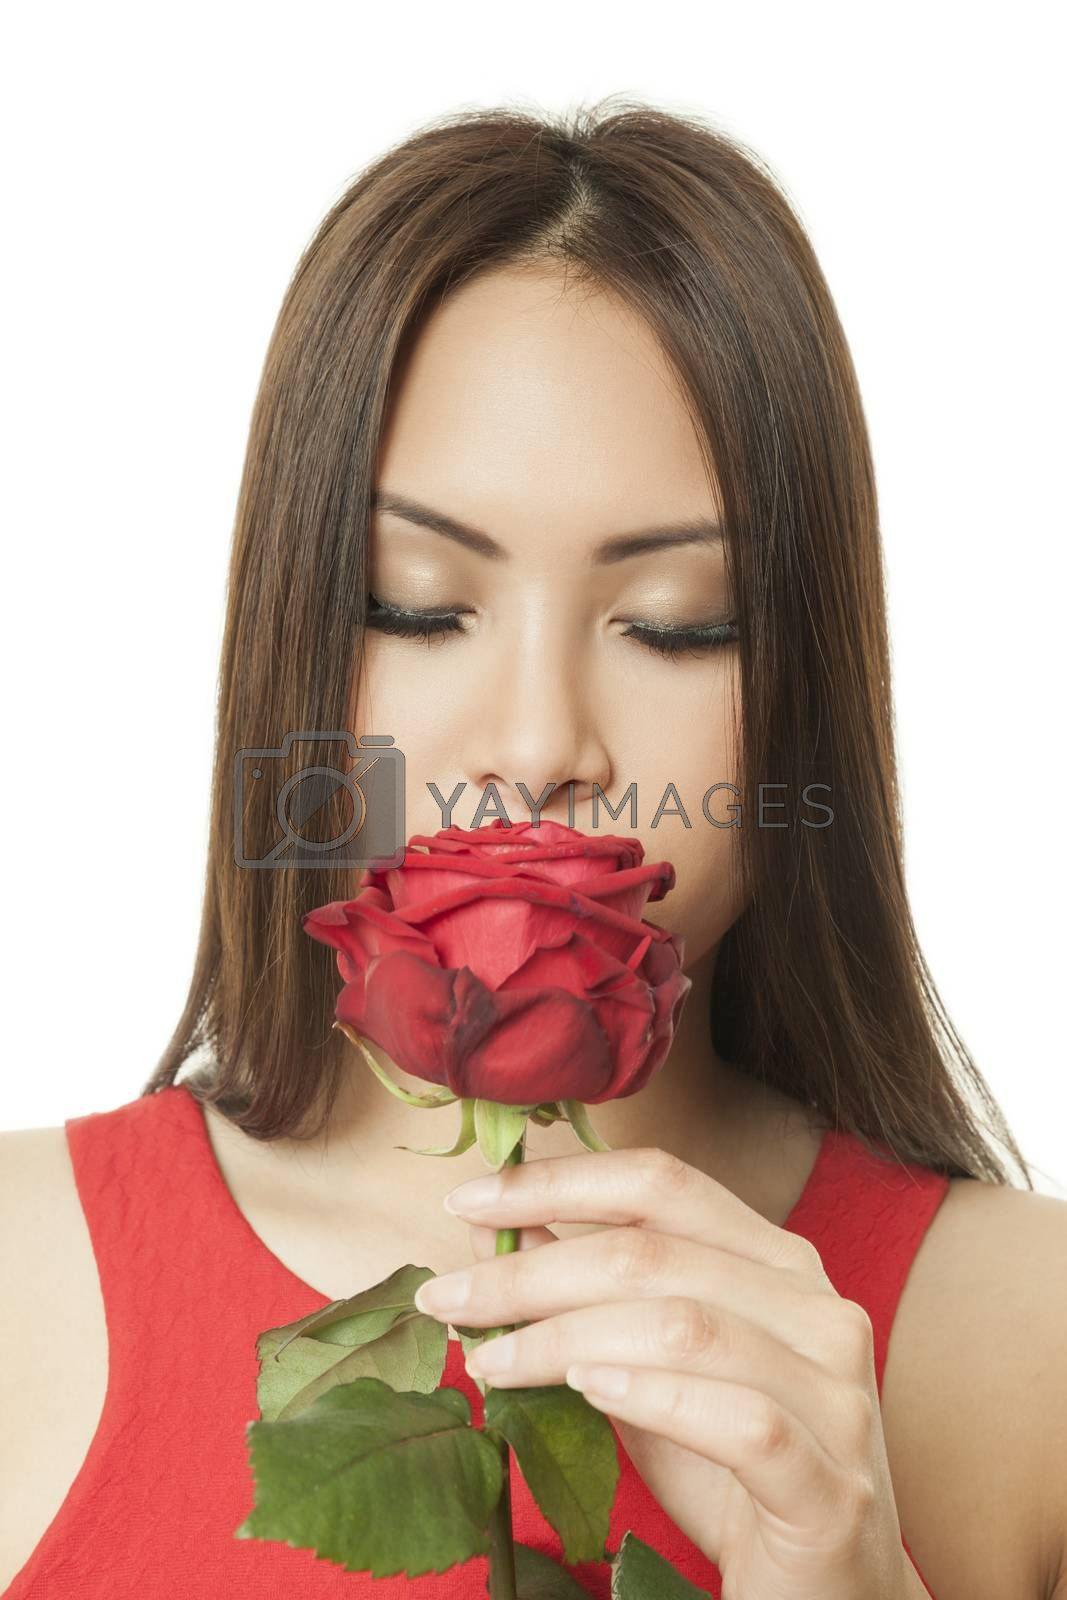 Royalty free image of asian woman red rose by magann